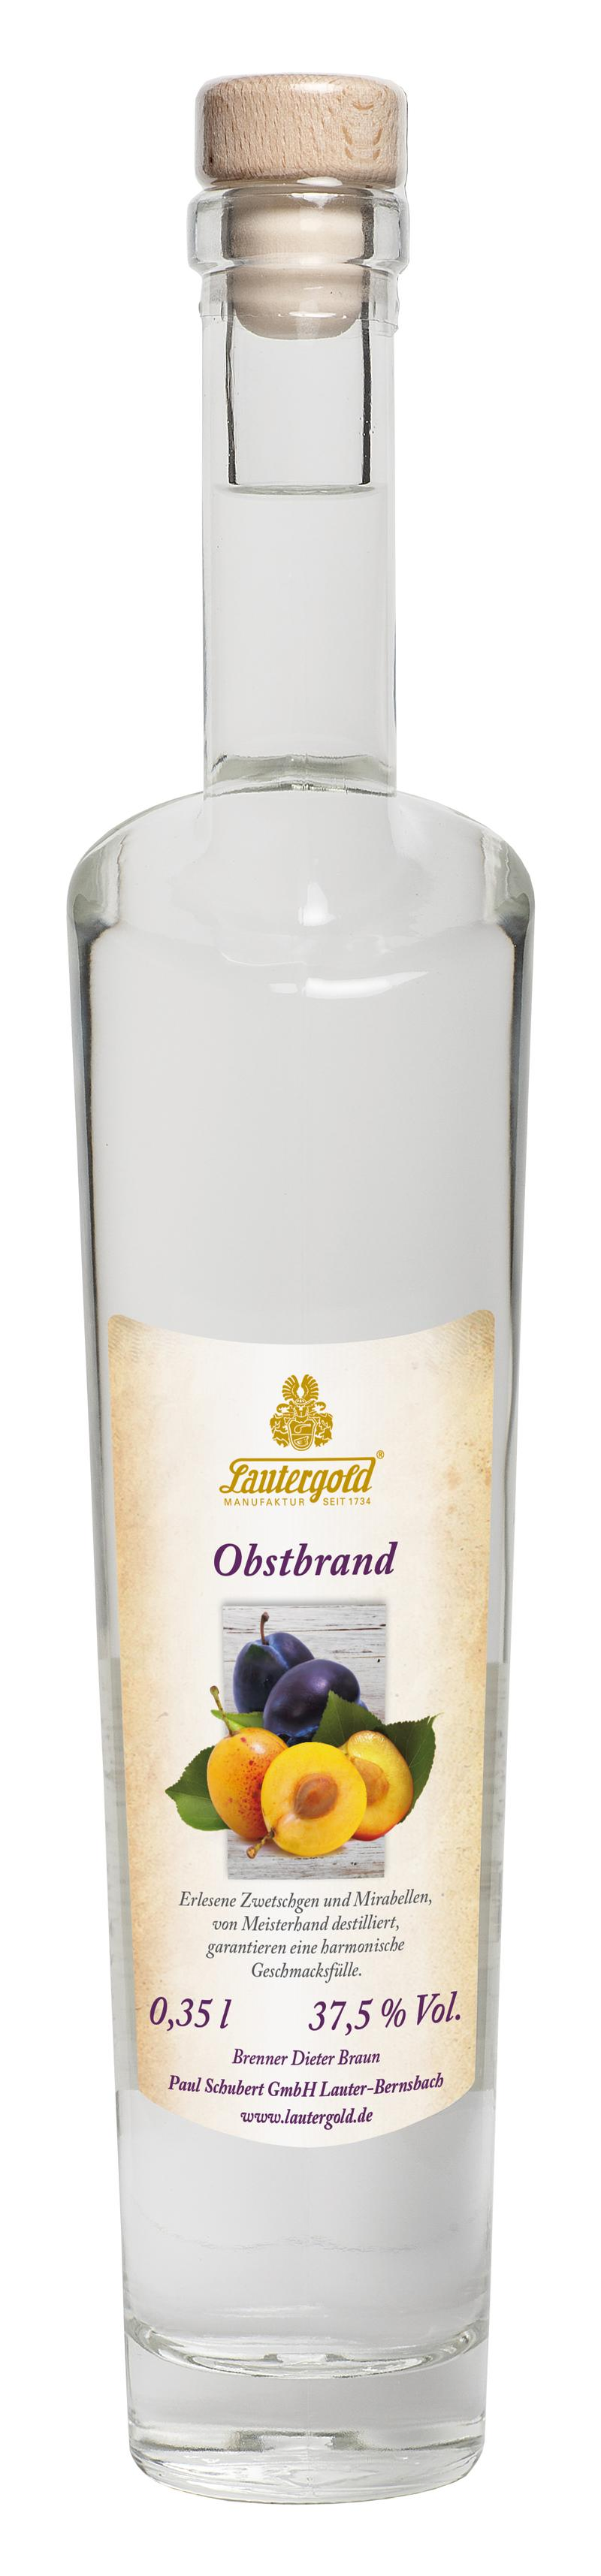 Obstbrand 37,5% vol.Obstbrand 37,5% vol.